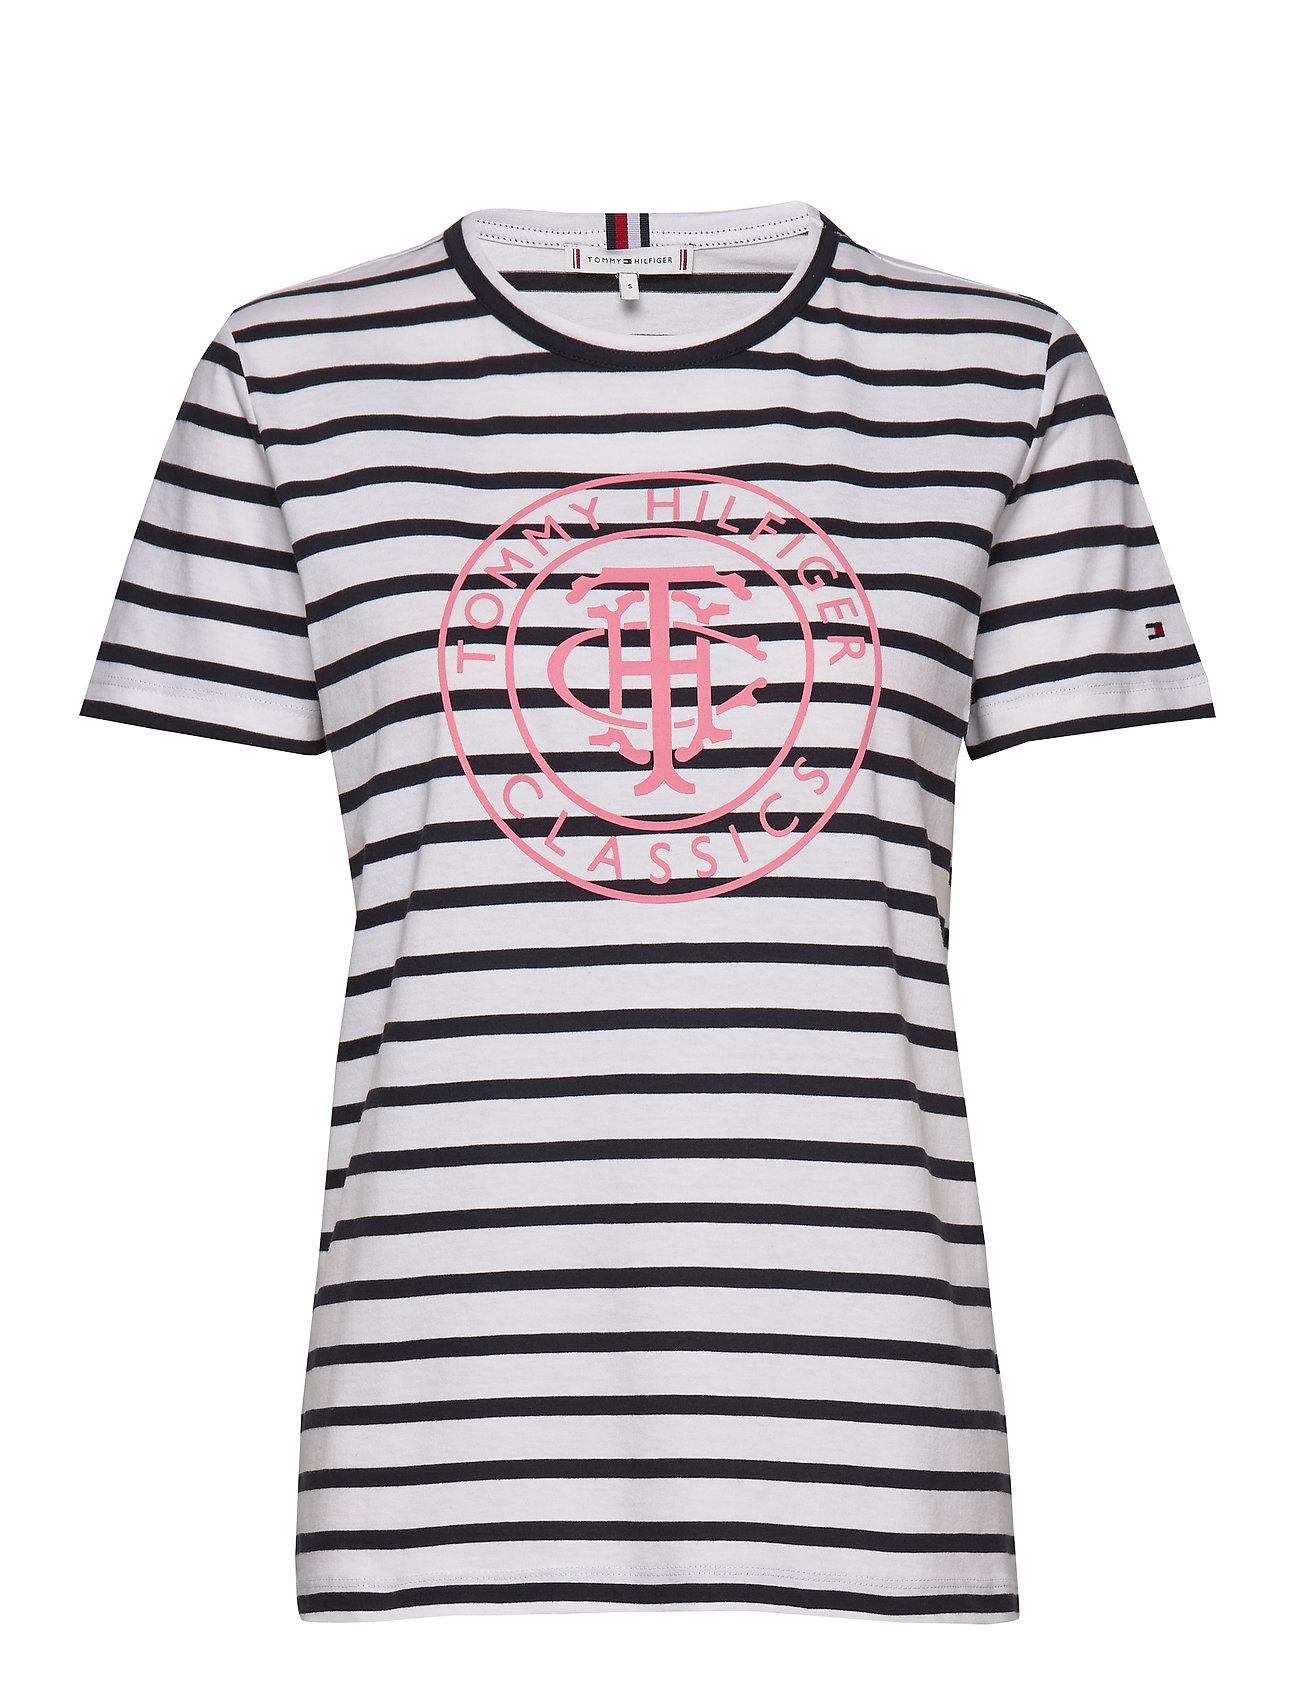 Tommy Hilfiger TH COOL ESS RELAXED GRAPHIC TEE - BRETON STP / DESERT SKY WHITE